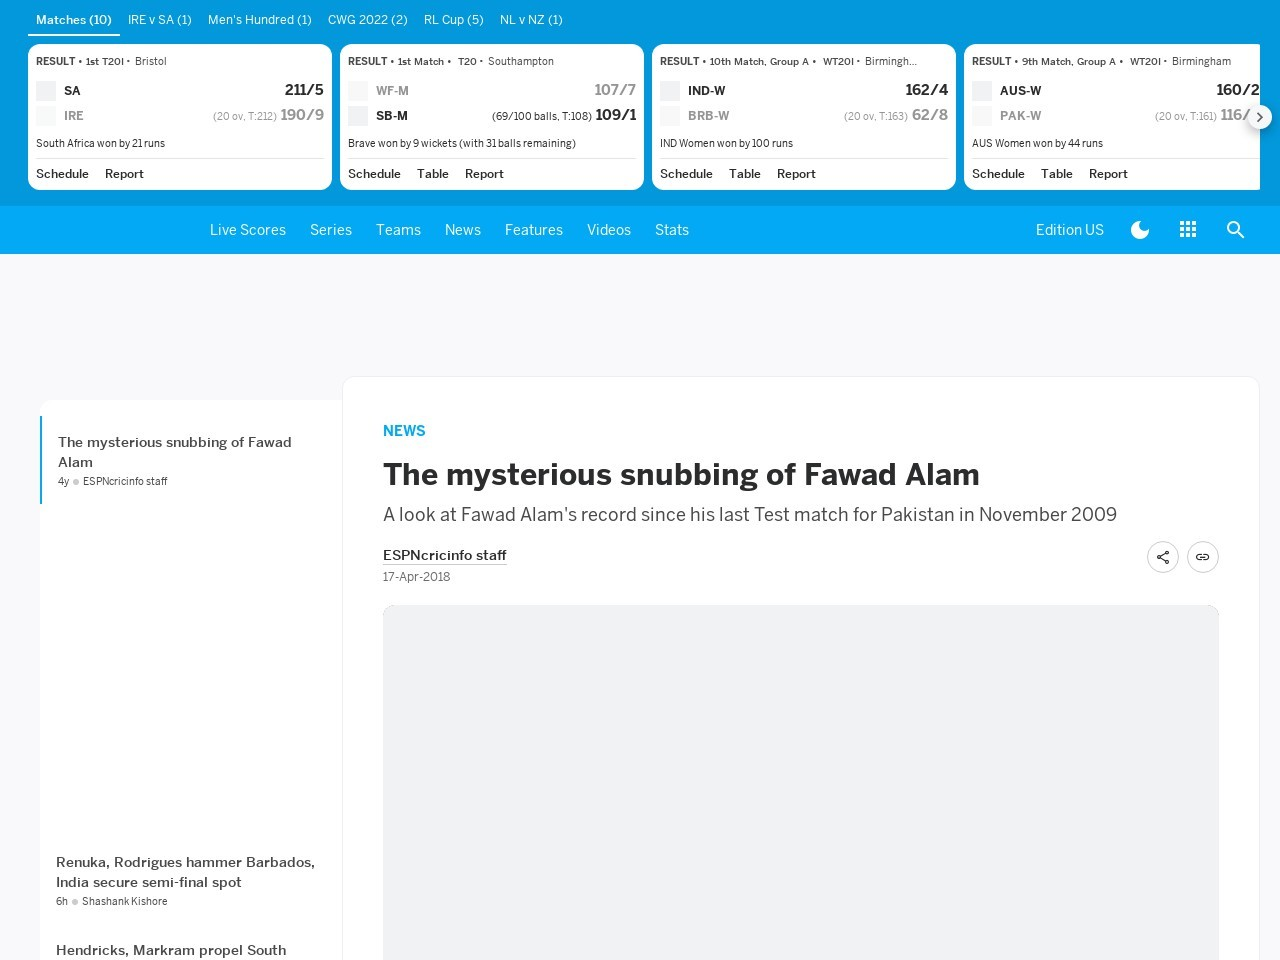 The mysterious snubbing of Fawad Alam